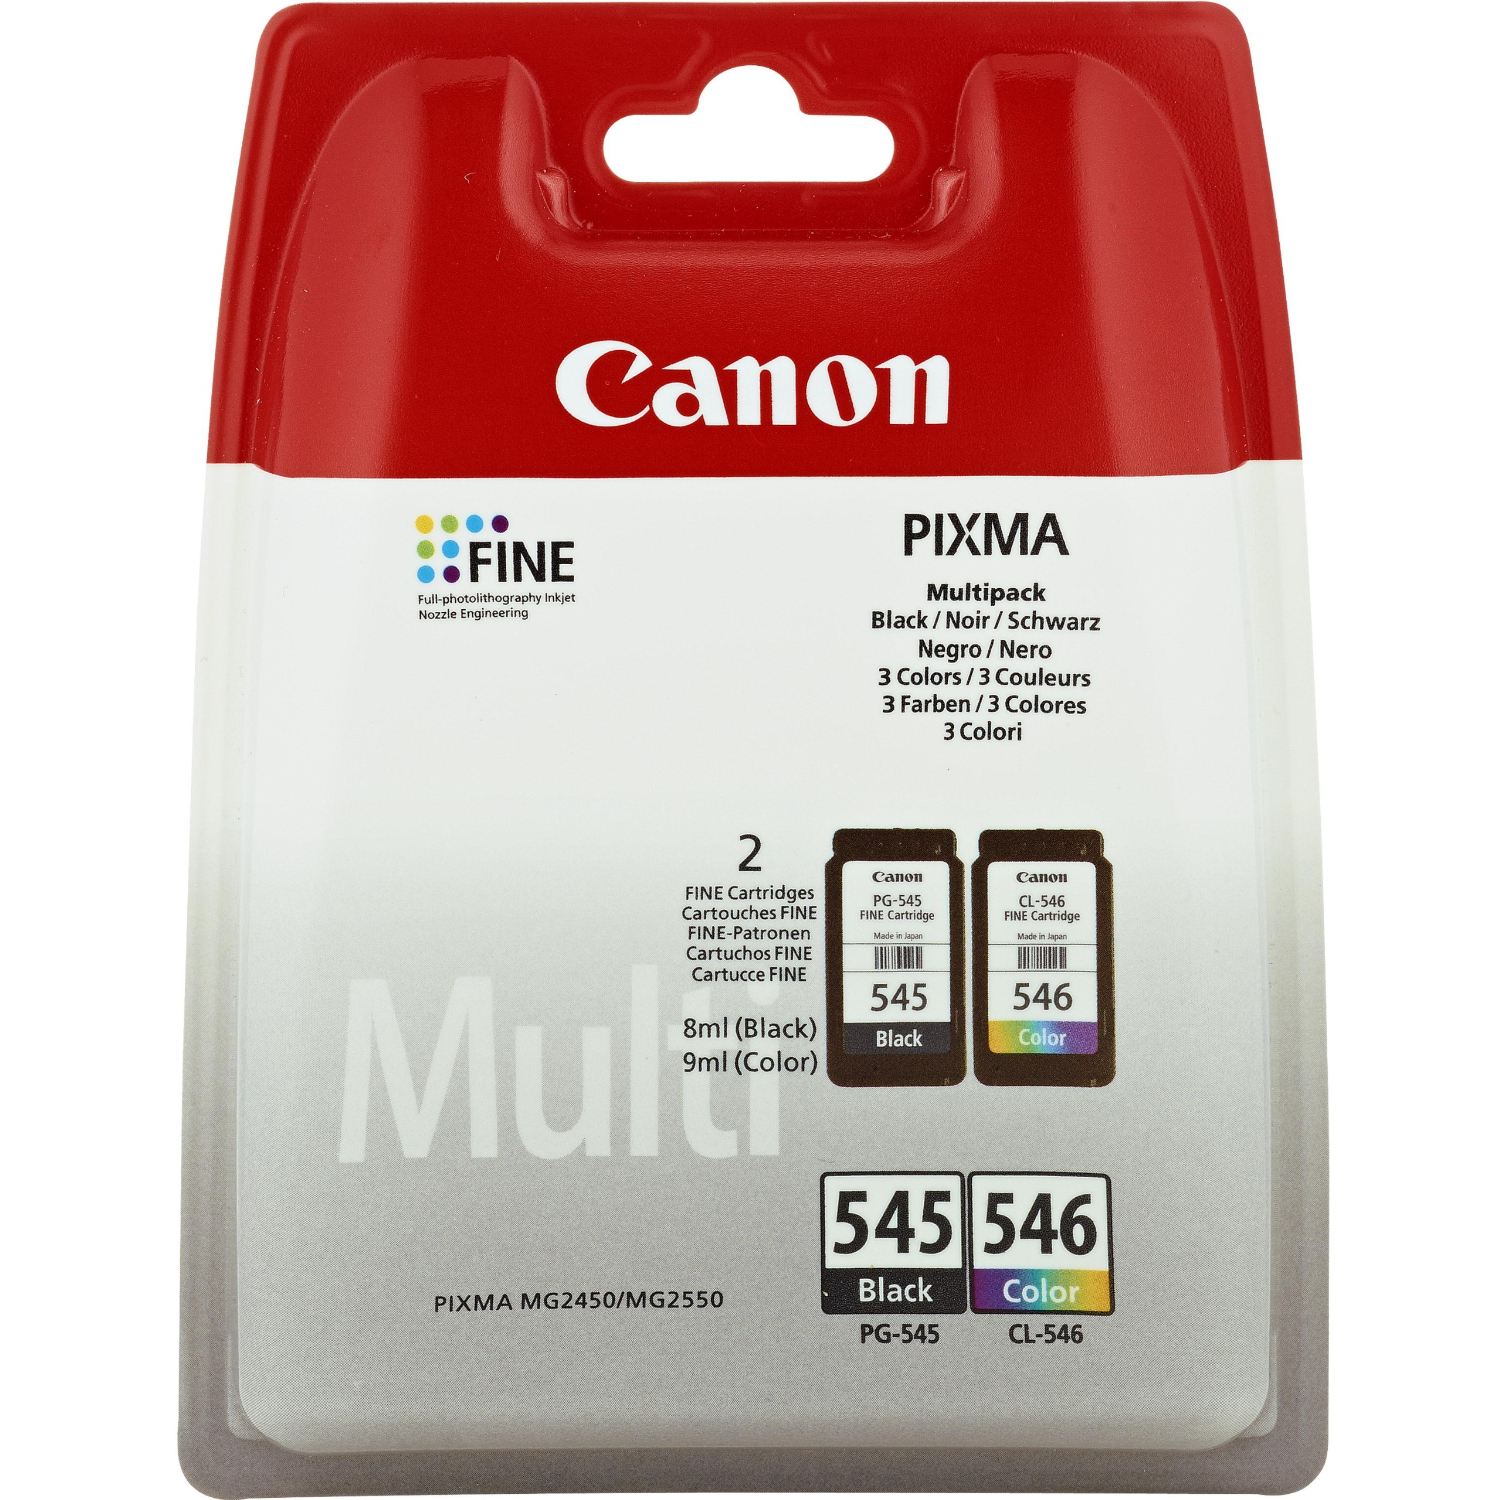 Canon PG-545 CL-546 Multi Pack